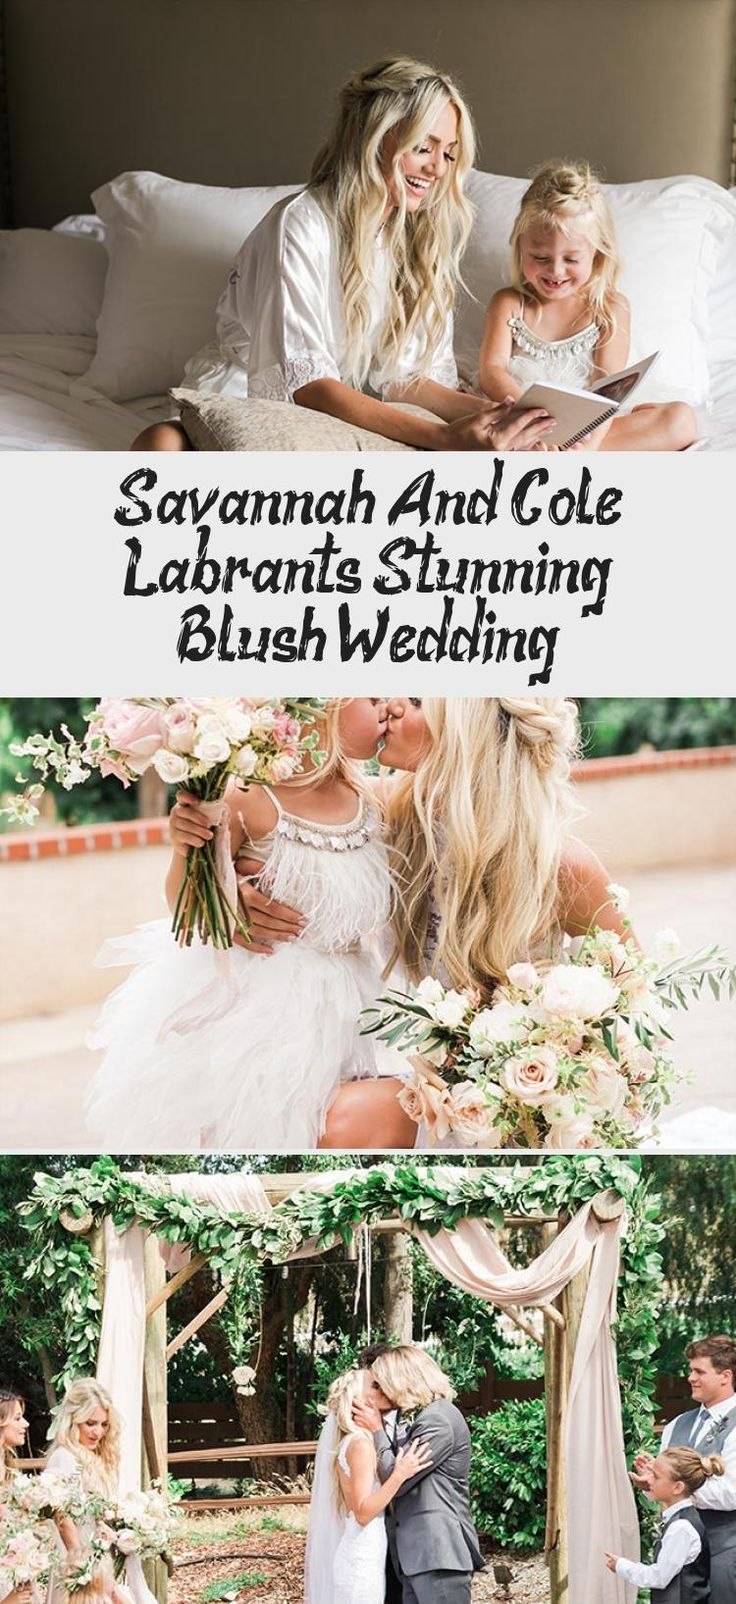 Savannah and Cole LaBrant's Stunning Blush Wedding - Inspired By This #TanBridesmaidDresses #BridesmaidDressesSummer #BridesmaidDressesHijab #BridesmaidDressesPurple #RedBridesmaidDresses